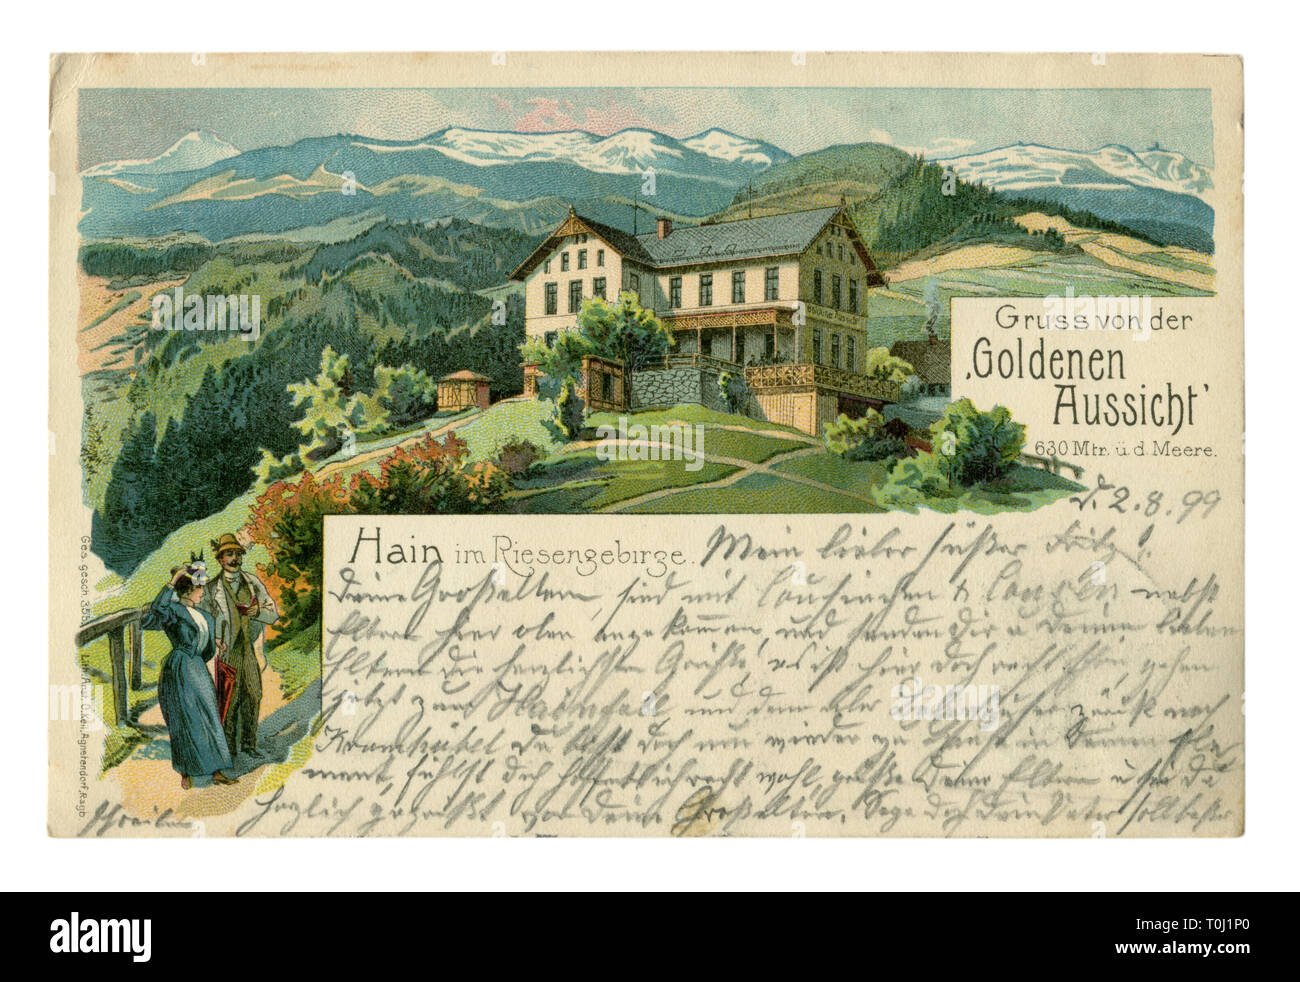 German historical advertising chromolithographic postcard: Mountain landscape with hotel 'Goldenen Aussicht'. Tourists guest house. The text letters - Stock Image